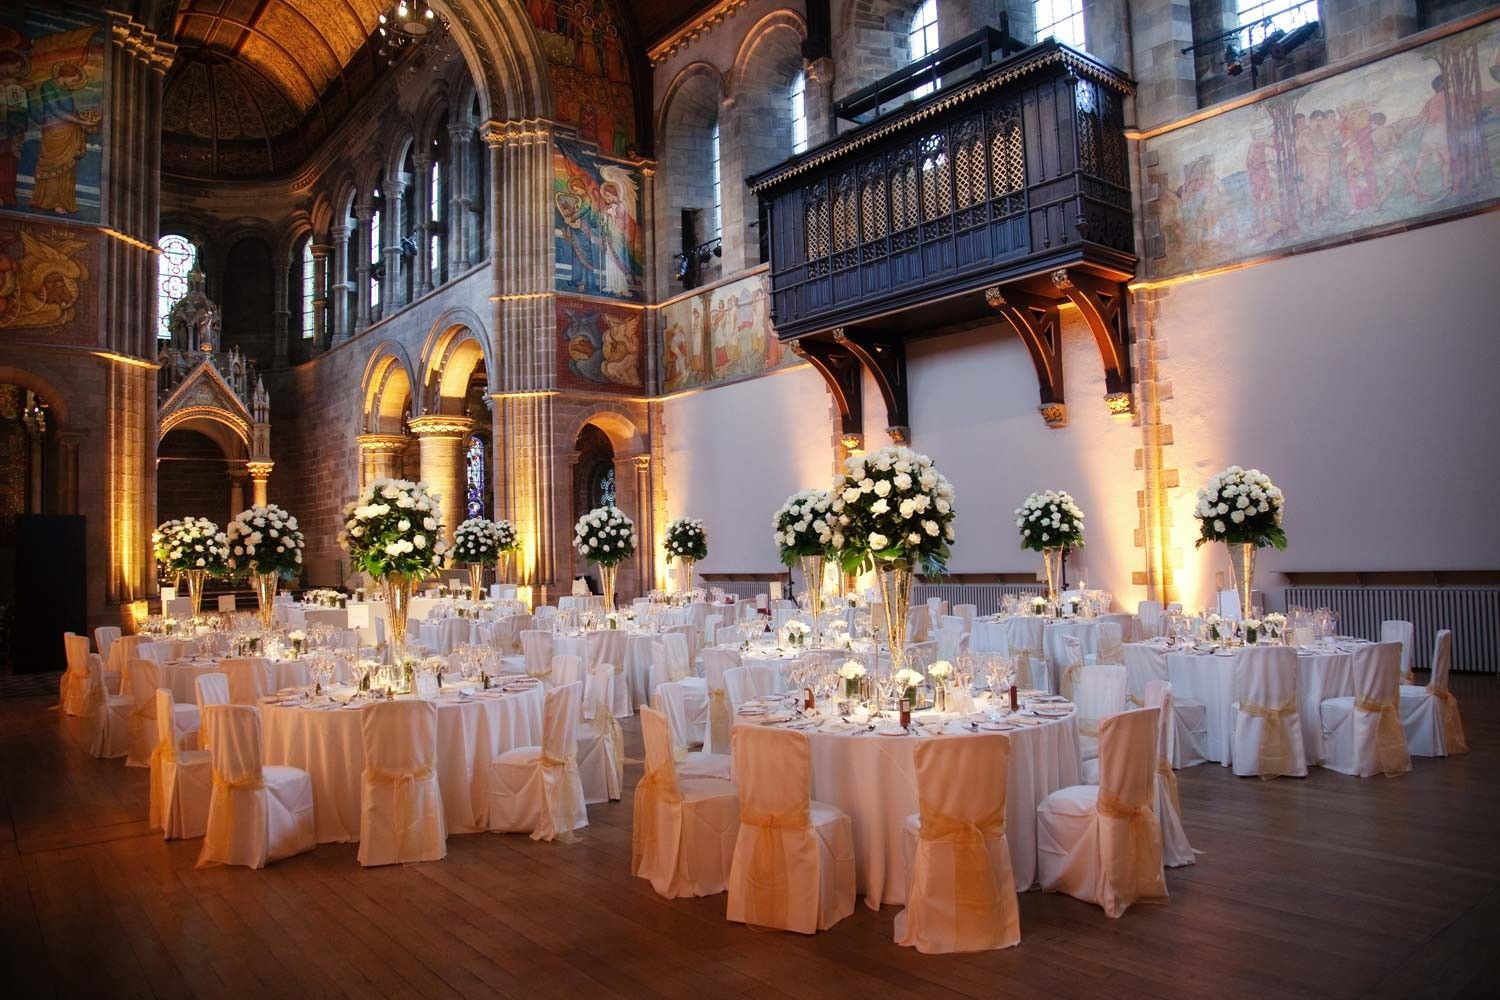 Wedding reception venue hire edinburgh scotland wedding wedding reception venue hire edinburgh scotland junglespirit Choice Image